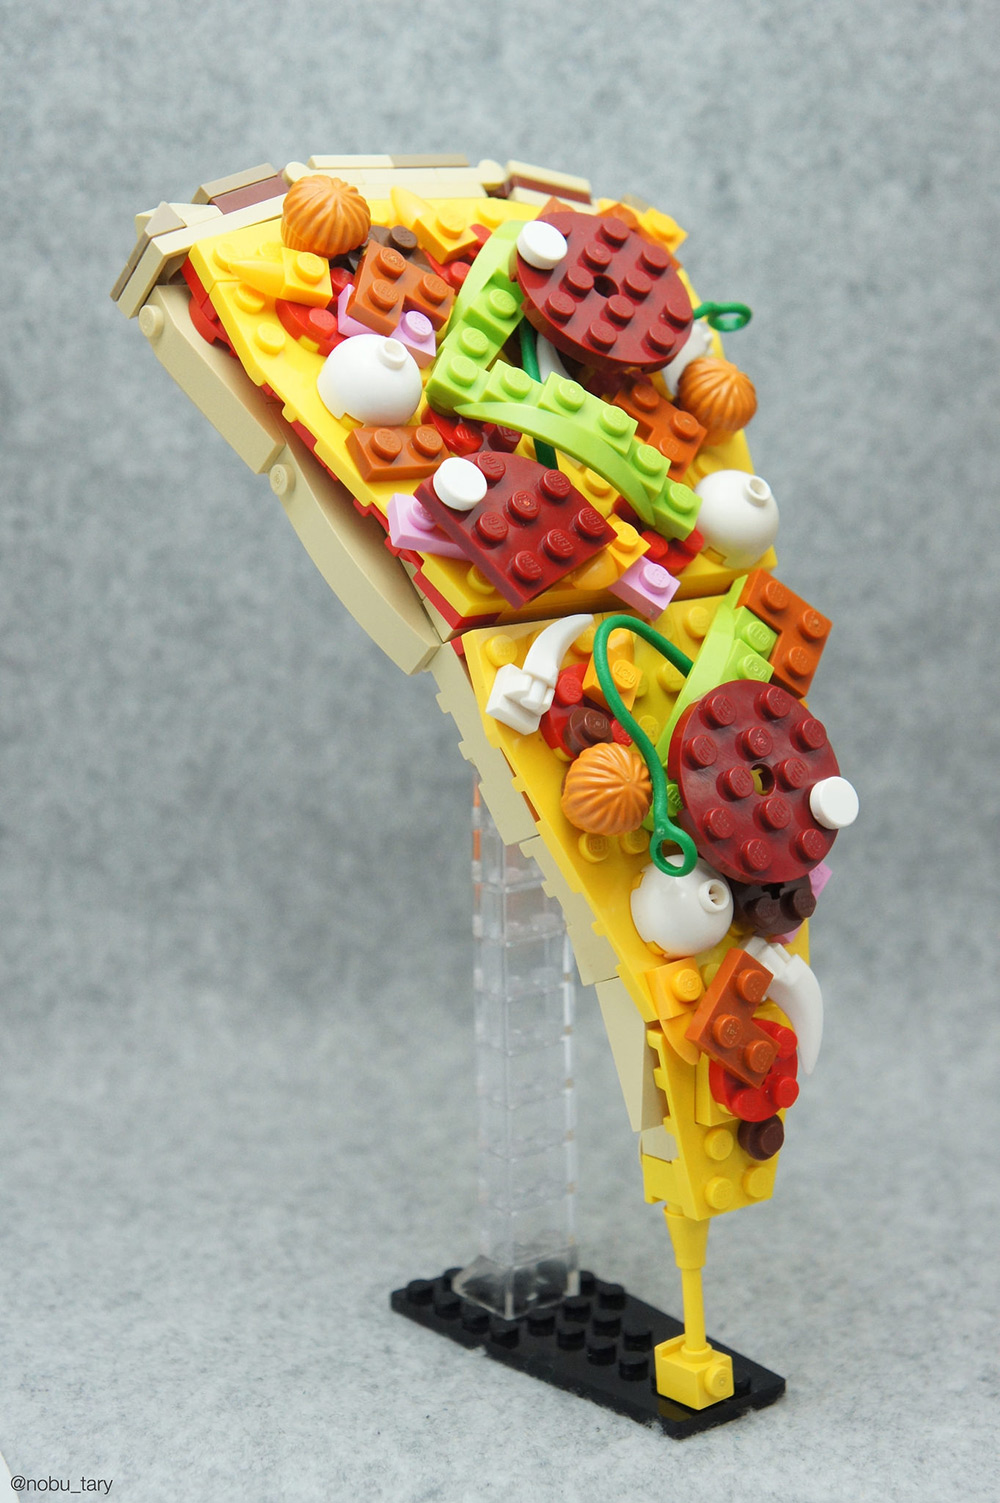 I don't think I've ever felt so hungry looking at Lego blocks! A Japanese Lego creator who goes by t